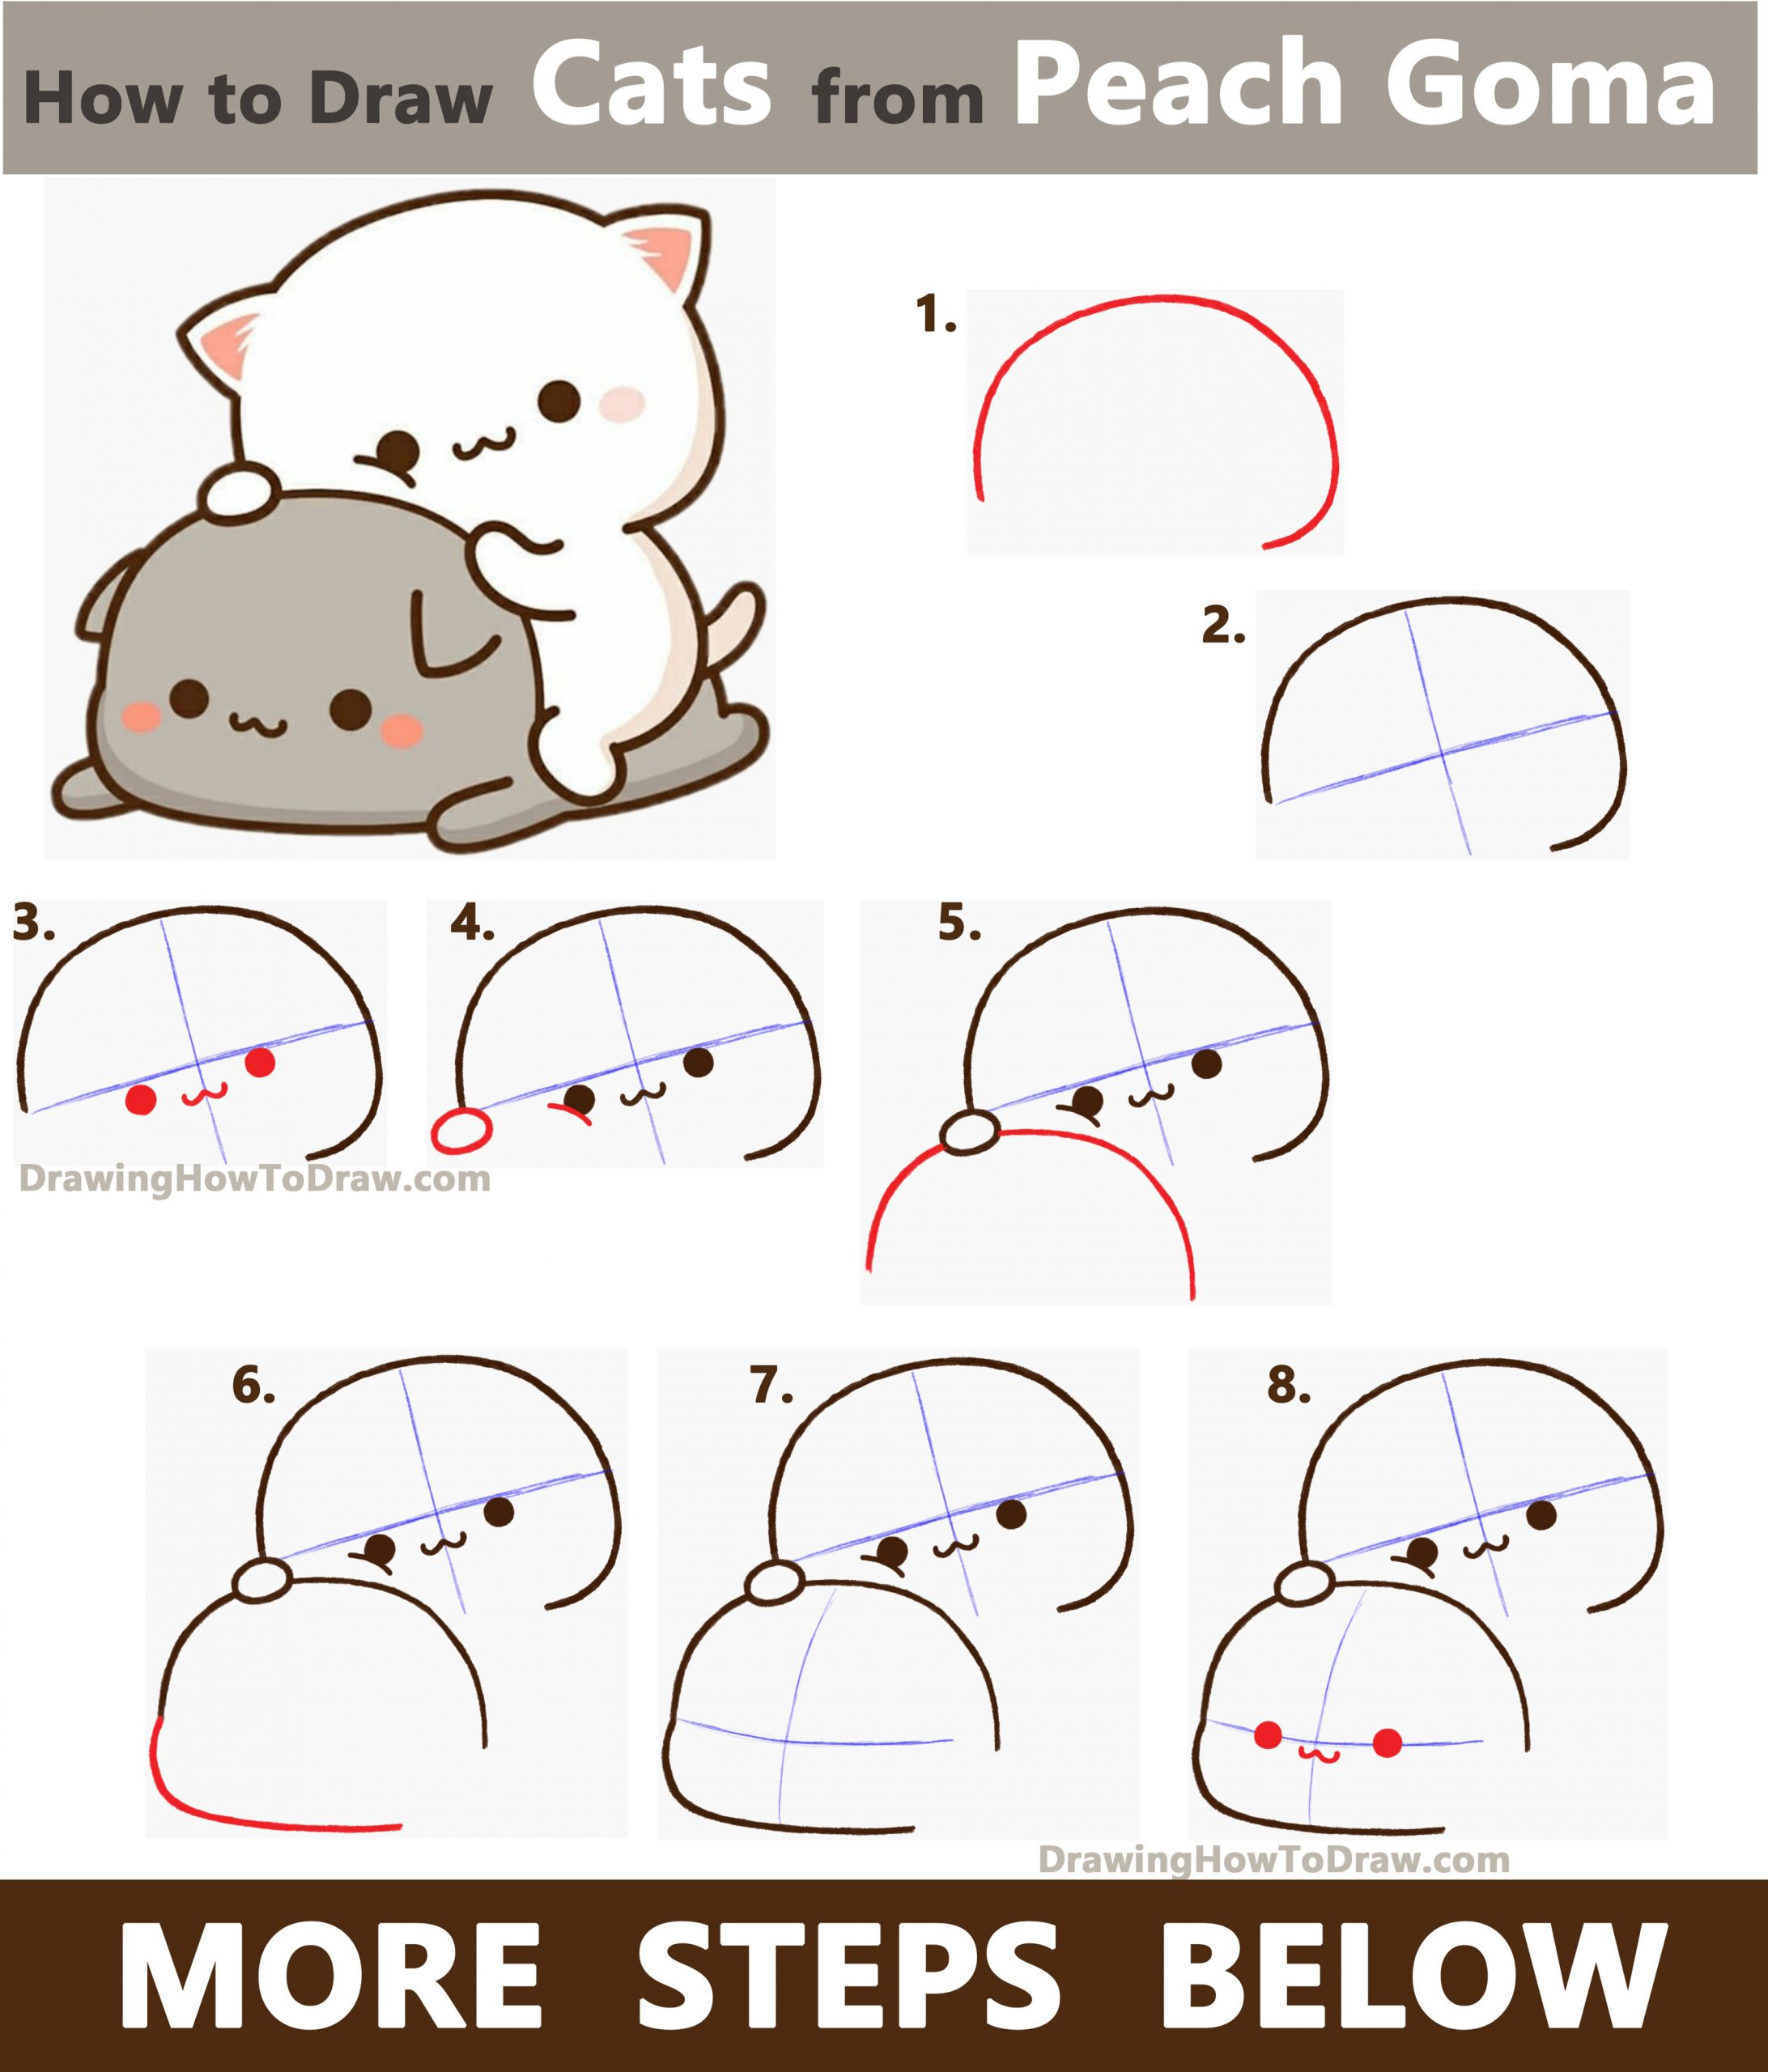 Learn How to Draw 2 Cats from Peach Goma (Super Cute / Kawaii) Easy Step by Step Drawing Tutorial